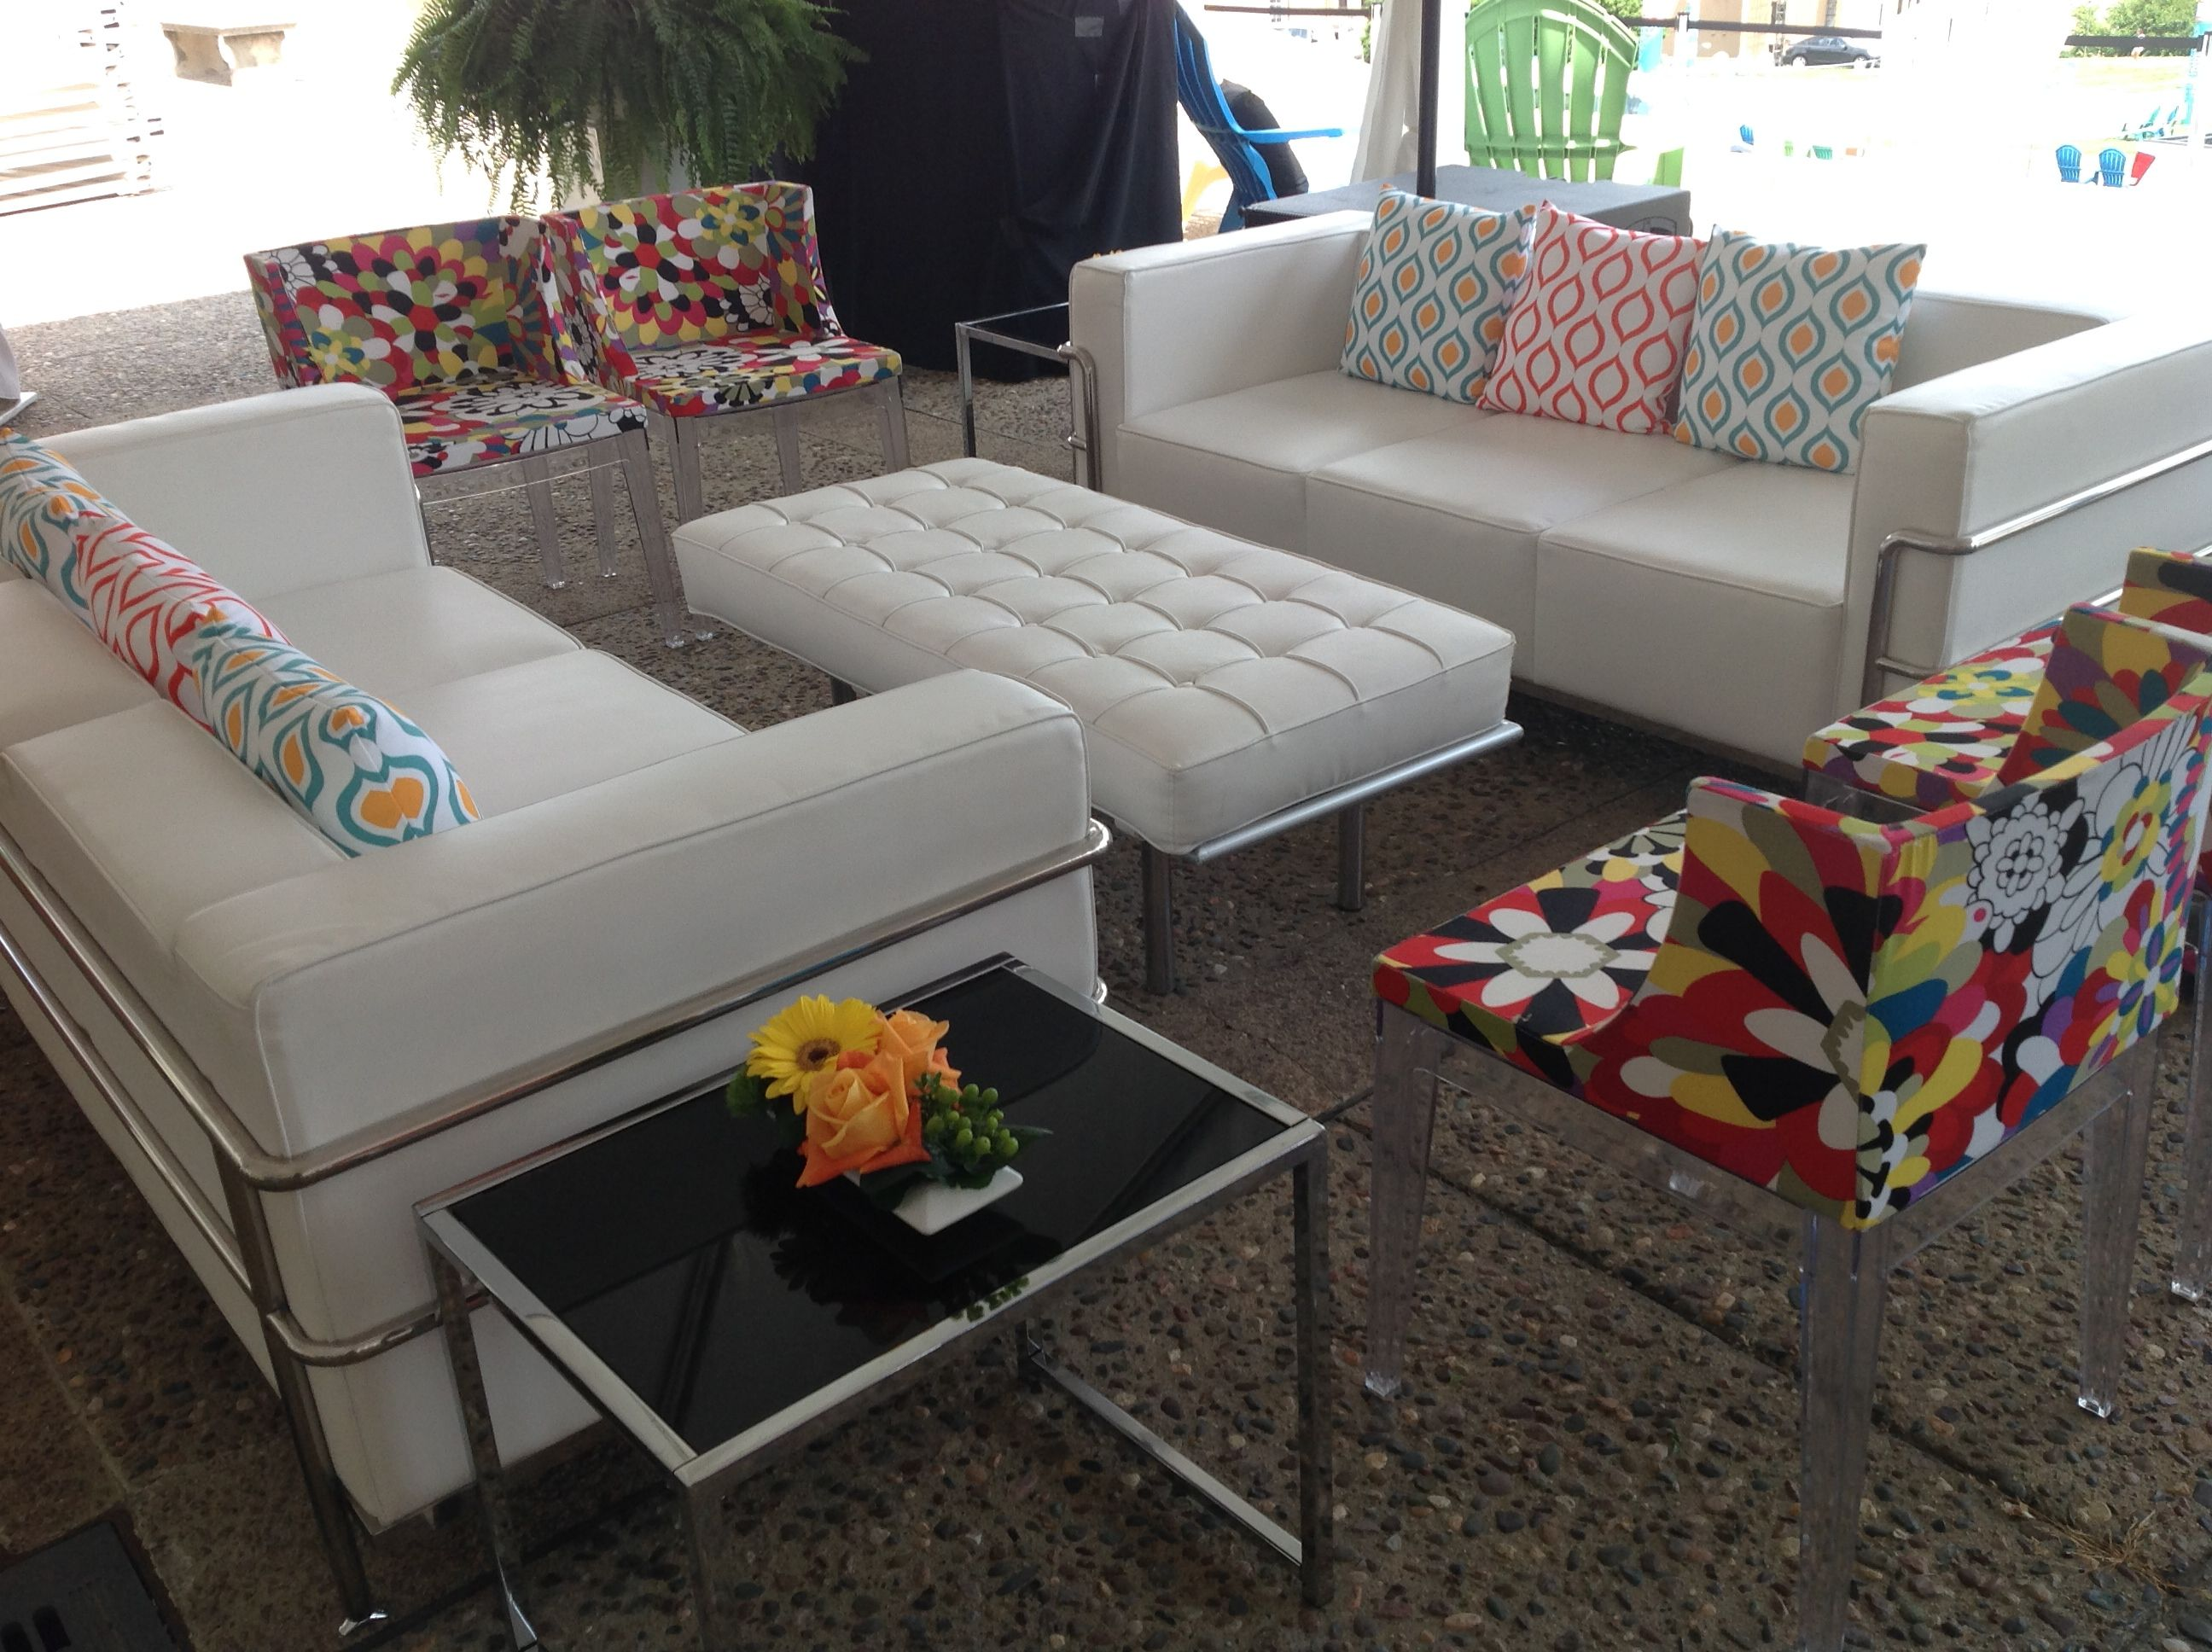 Our Lounge Furniture Store, Studio M Lounge, Offers A Wide Variety Of  Beautiful Furniture